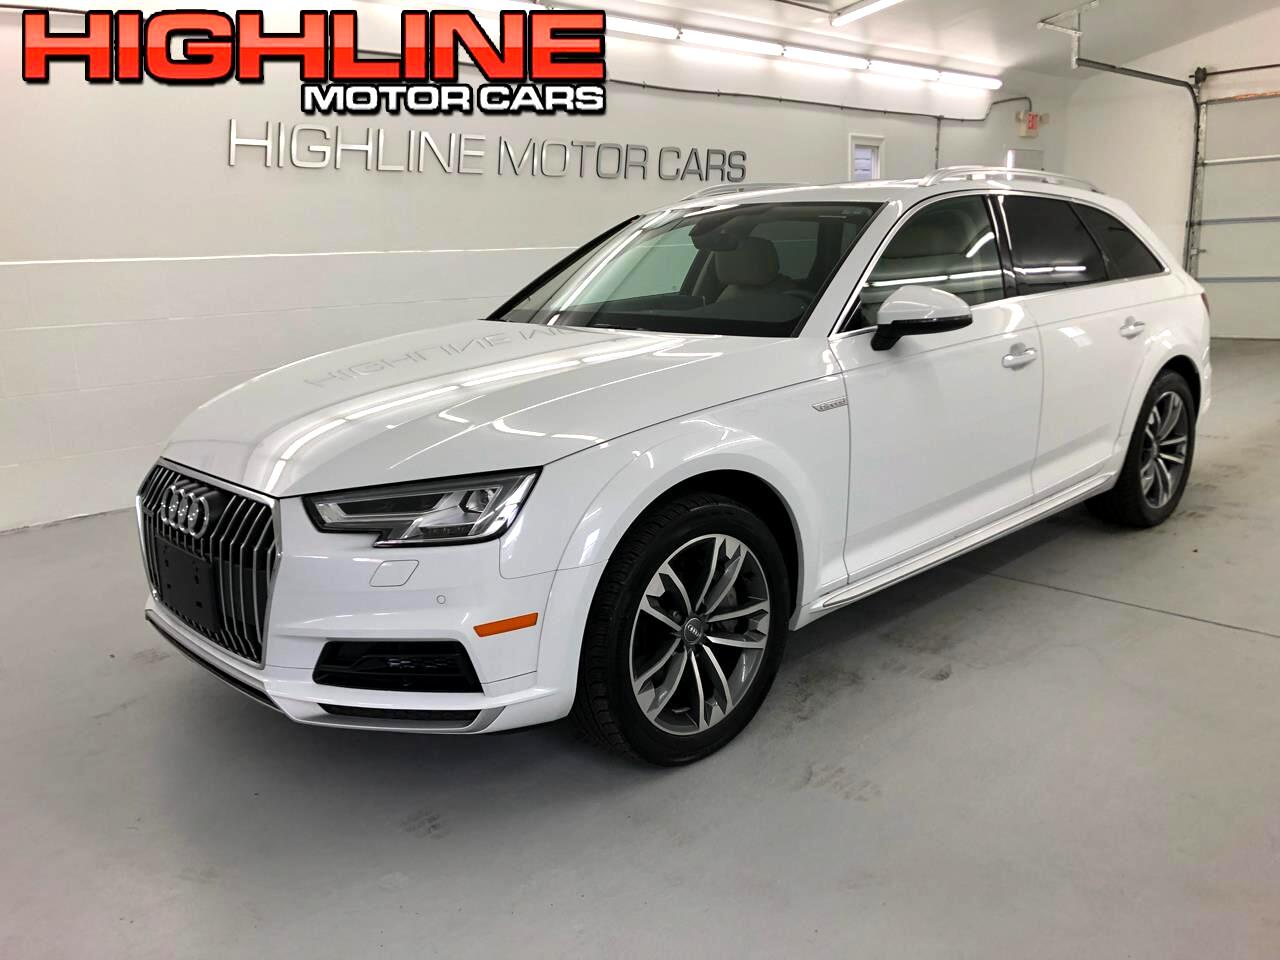 2018 Audi A4 allroad 2.0 TFSI Tech Premium Plus